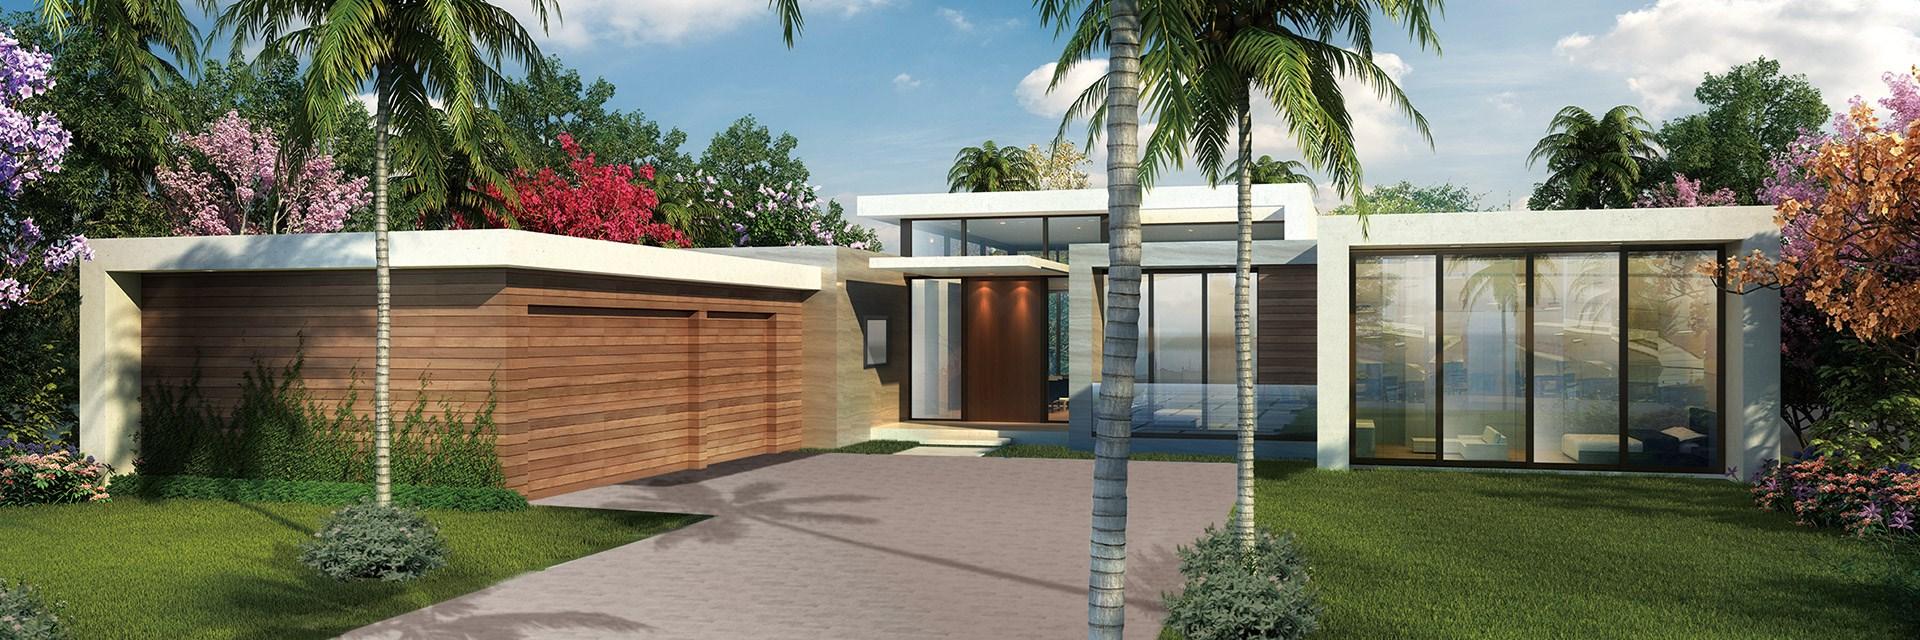 MODERN STYLE HOME DESIGNS